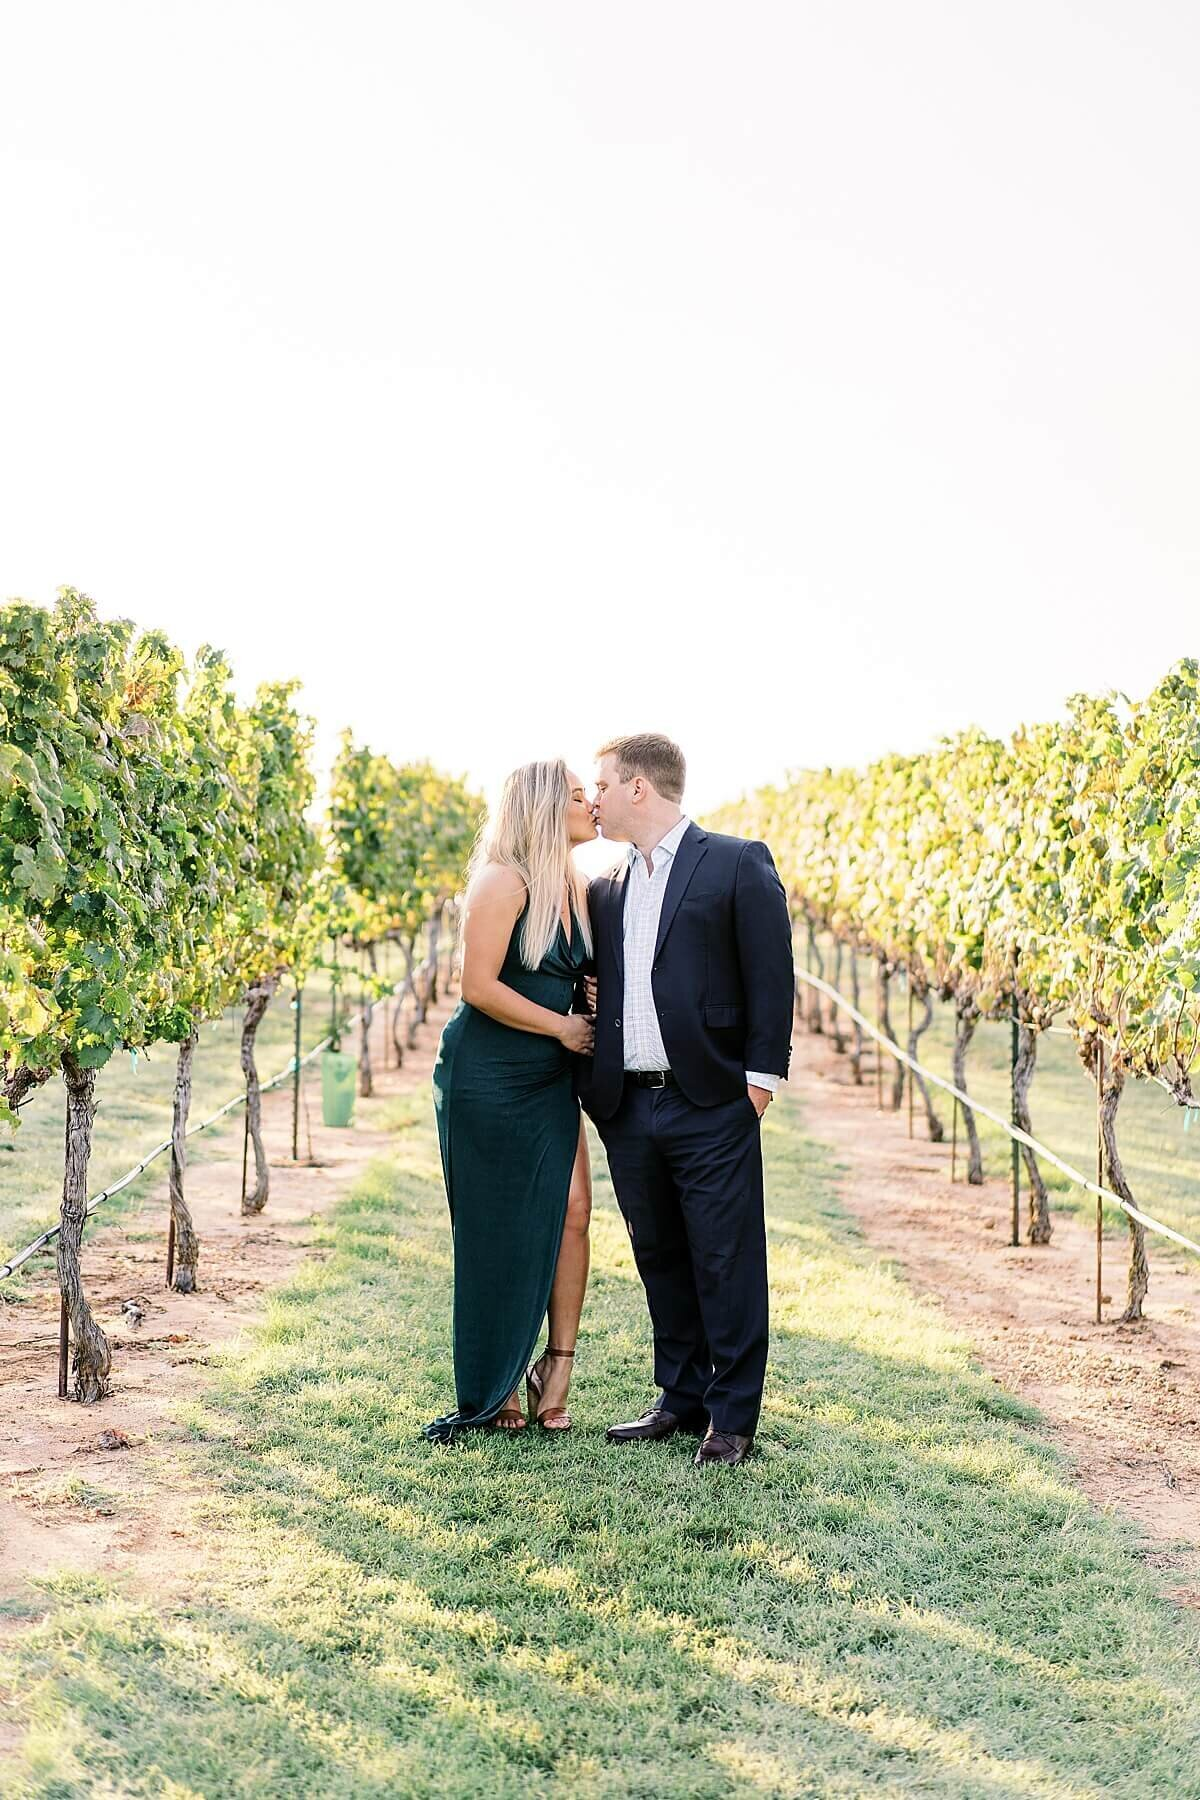 Texas-Hill-Country-Vineyard-Engagement-Portrait-Session-Alicia-Yarrish-Photography_0018